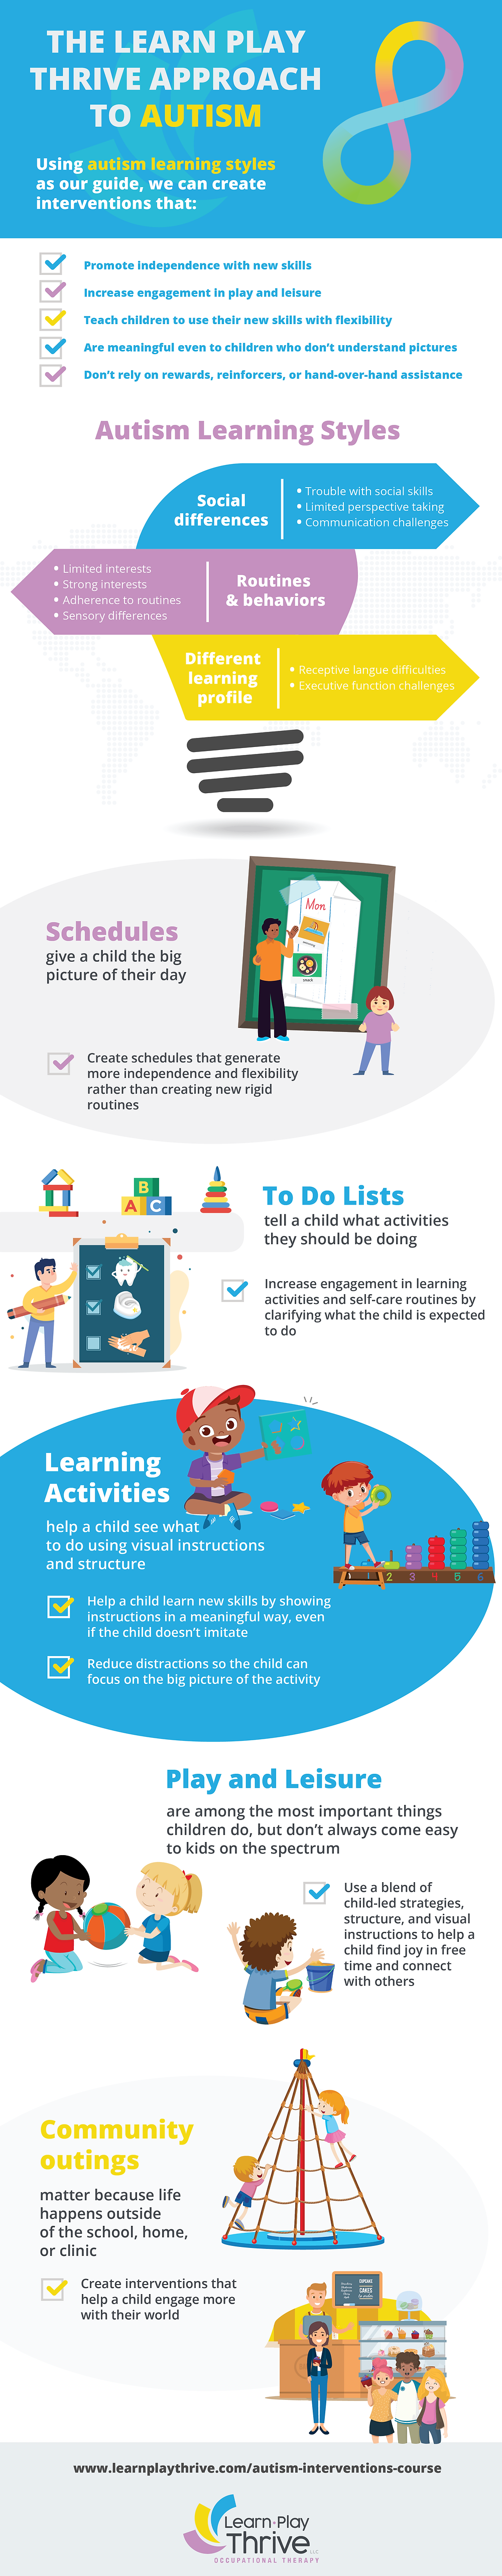 The Learn Play Thrive Approach to Autism